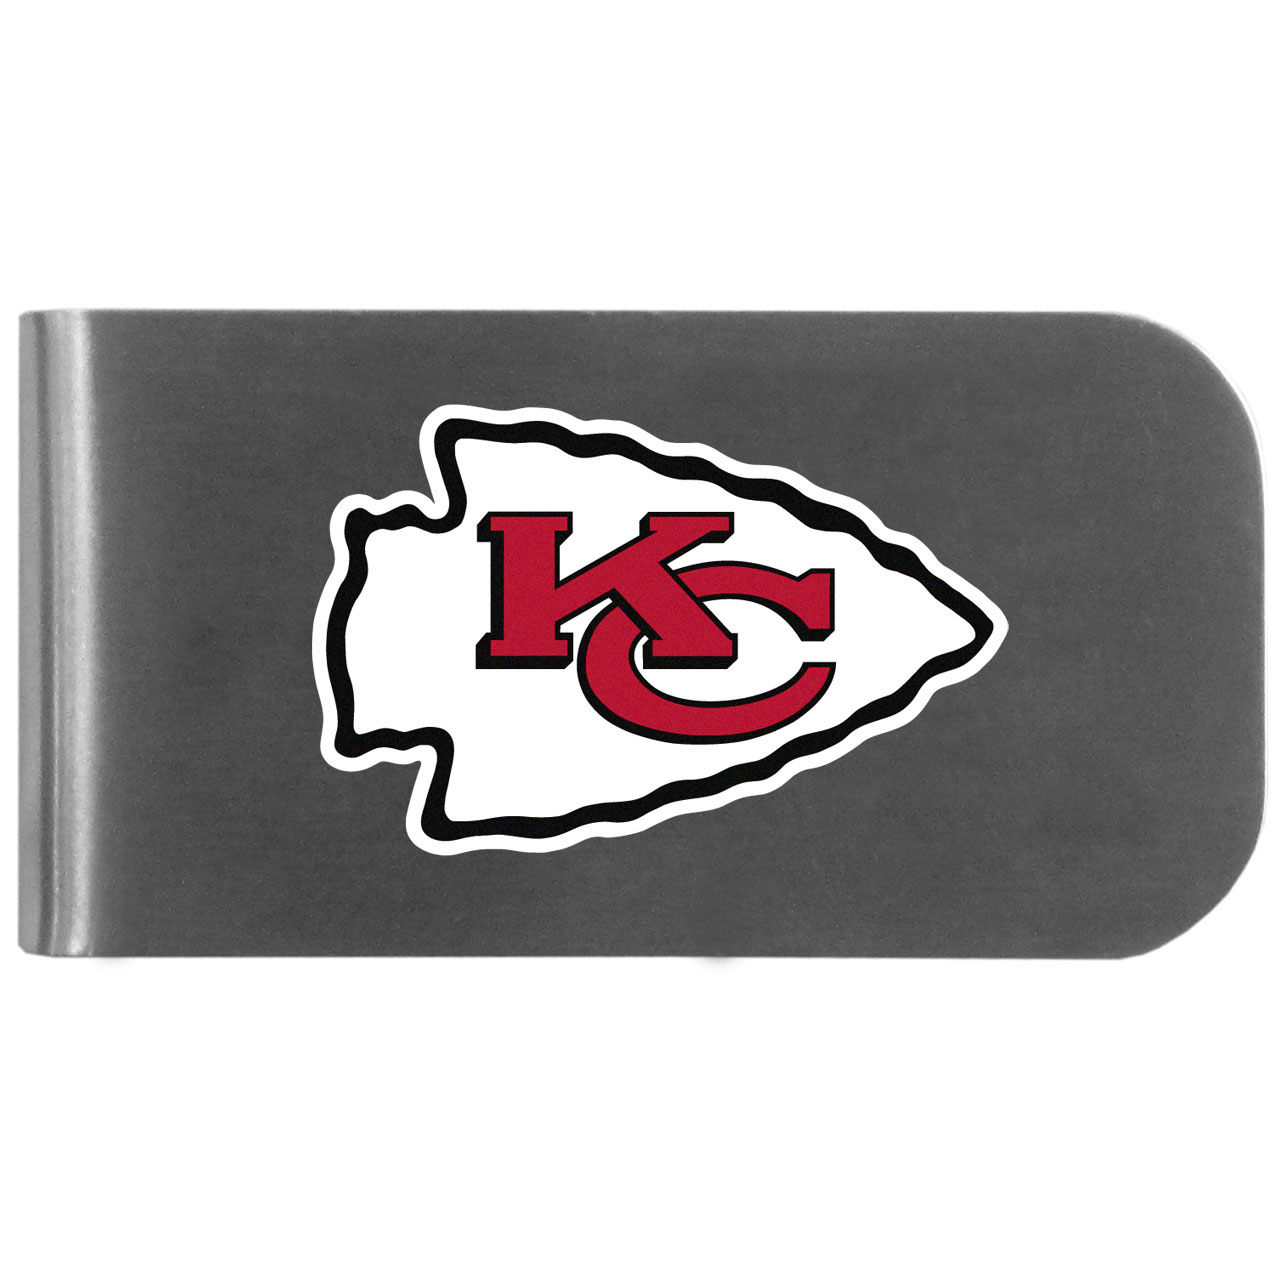 Kansas City Chiefs Logo Bottle Opener Money Clip - This unique money clip features a classic, brushed-metal finish with a handy bottle opener feature on the back. The clip has the Kansas City Chiefs logo expertly printed on the front of the clip.